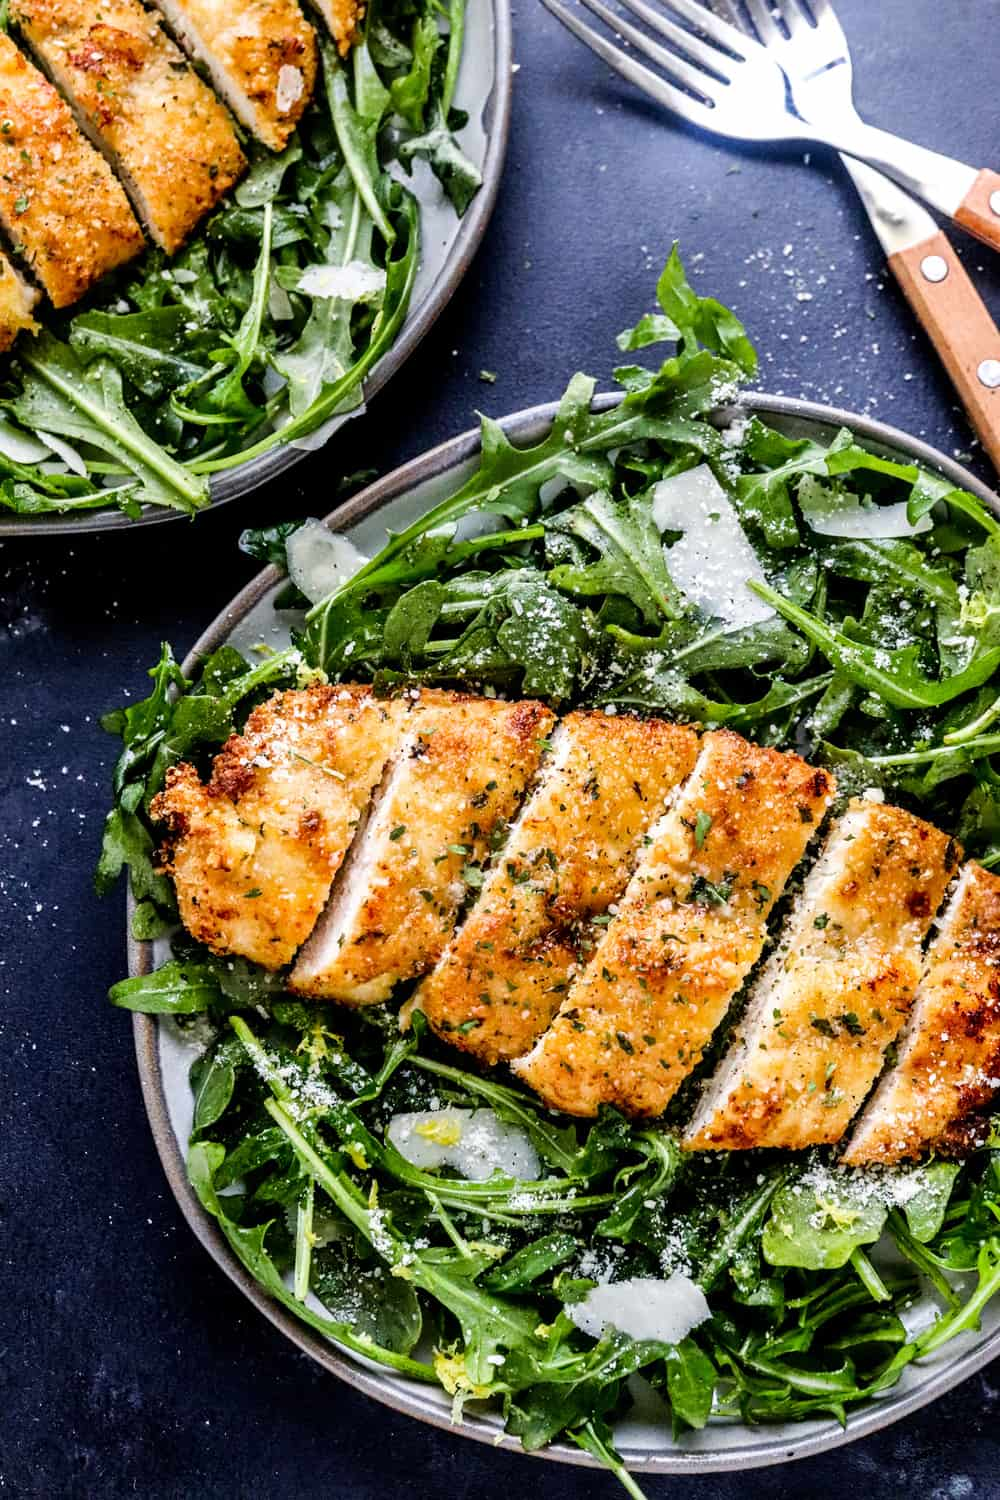 golden brown breaded chicken sliced into strips on a bed of arugula and shaved Parmesan